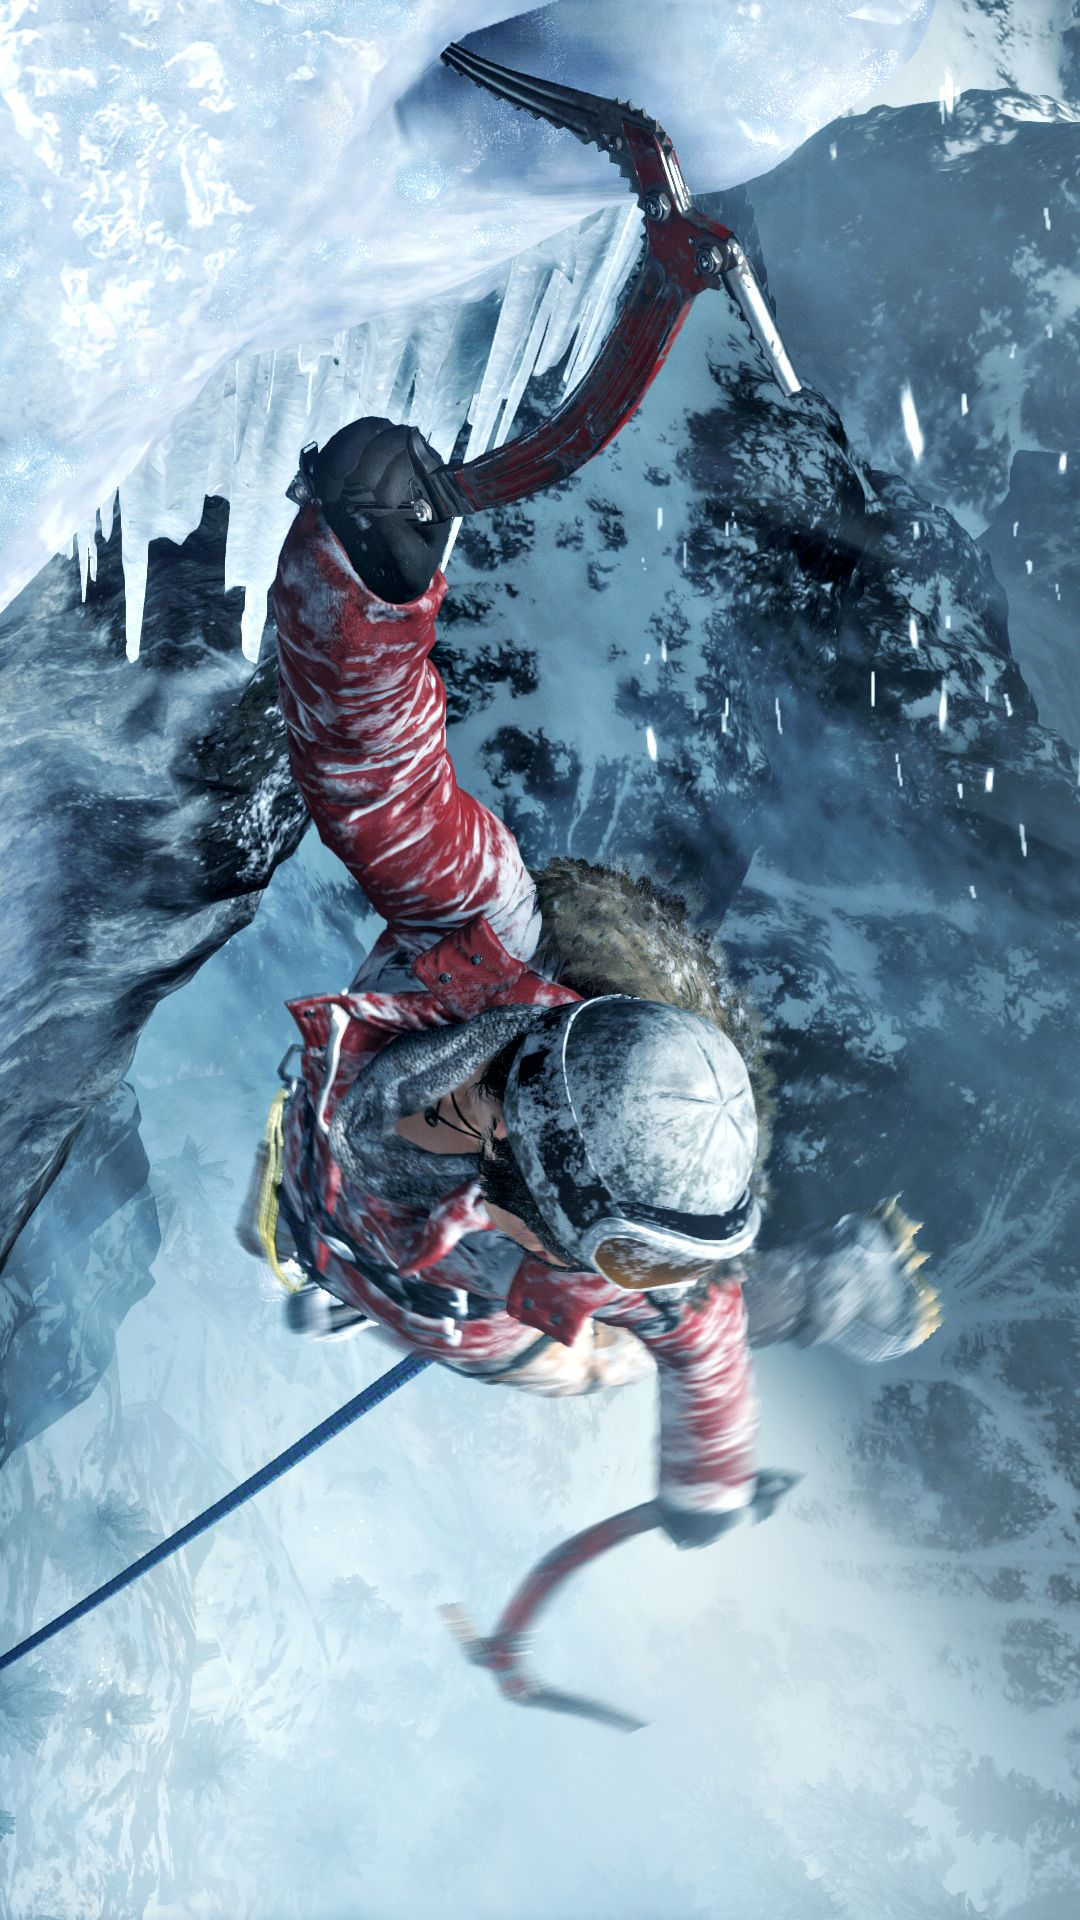 nat games rise of the tomb raider 10